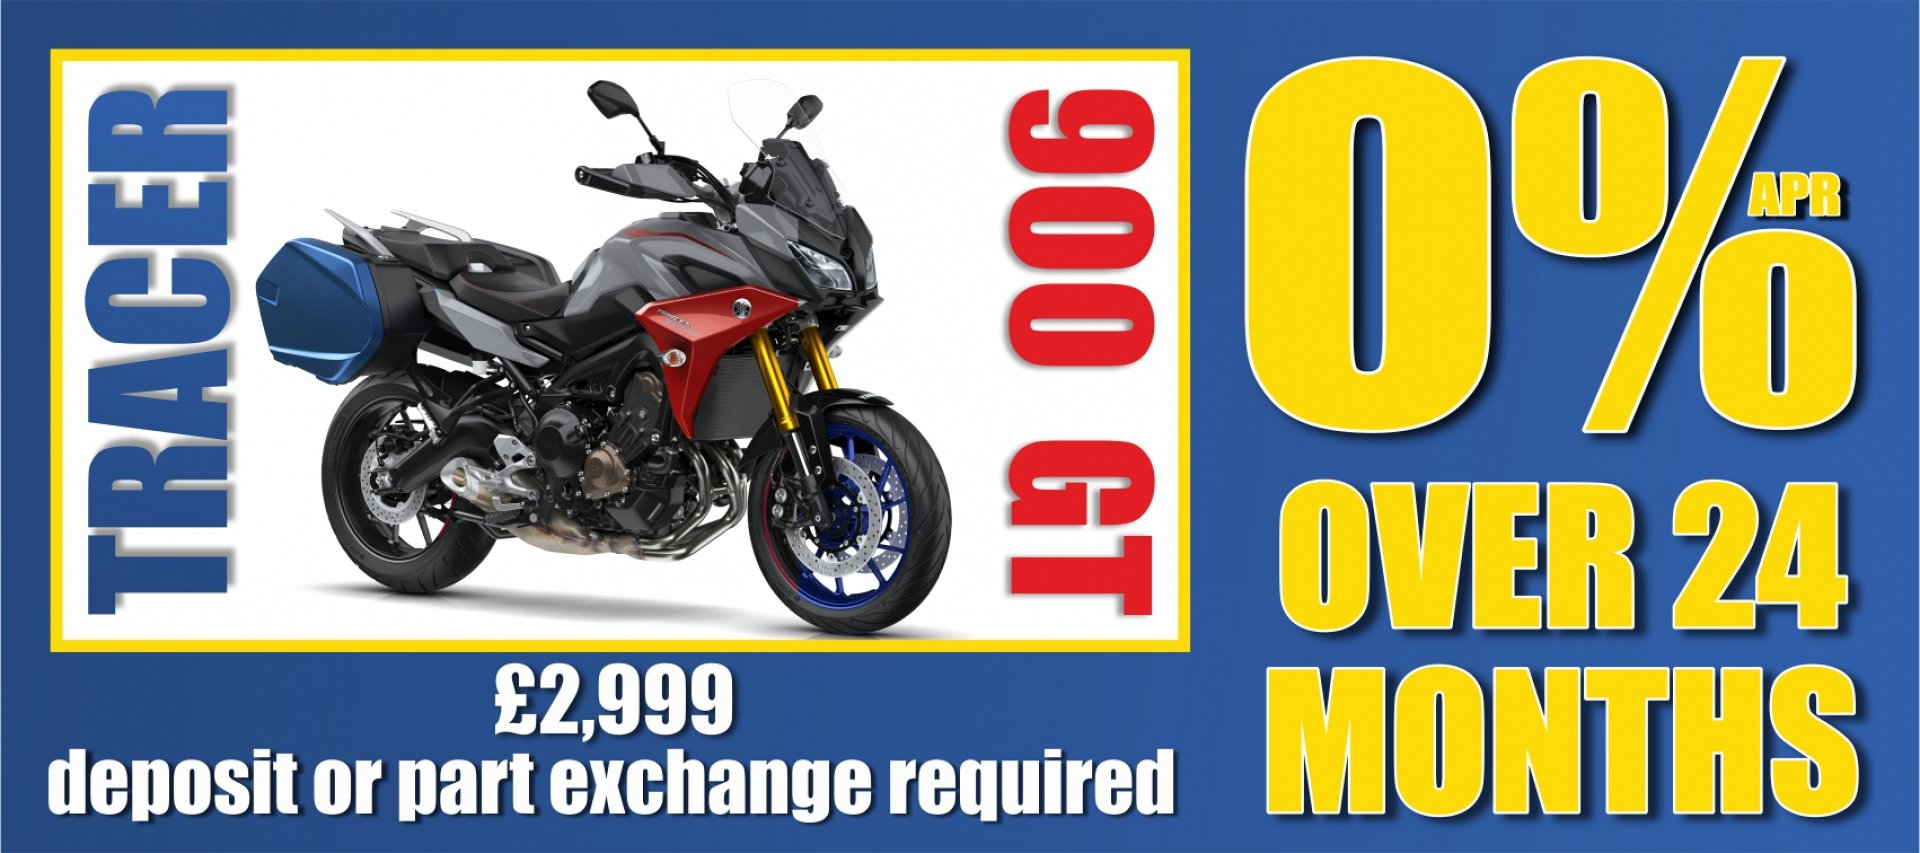 0% APR Finance on the Yamaha Tracer 900 GT